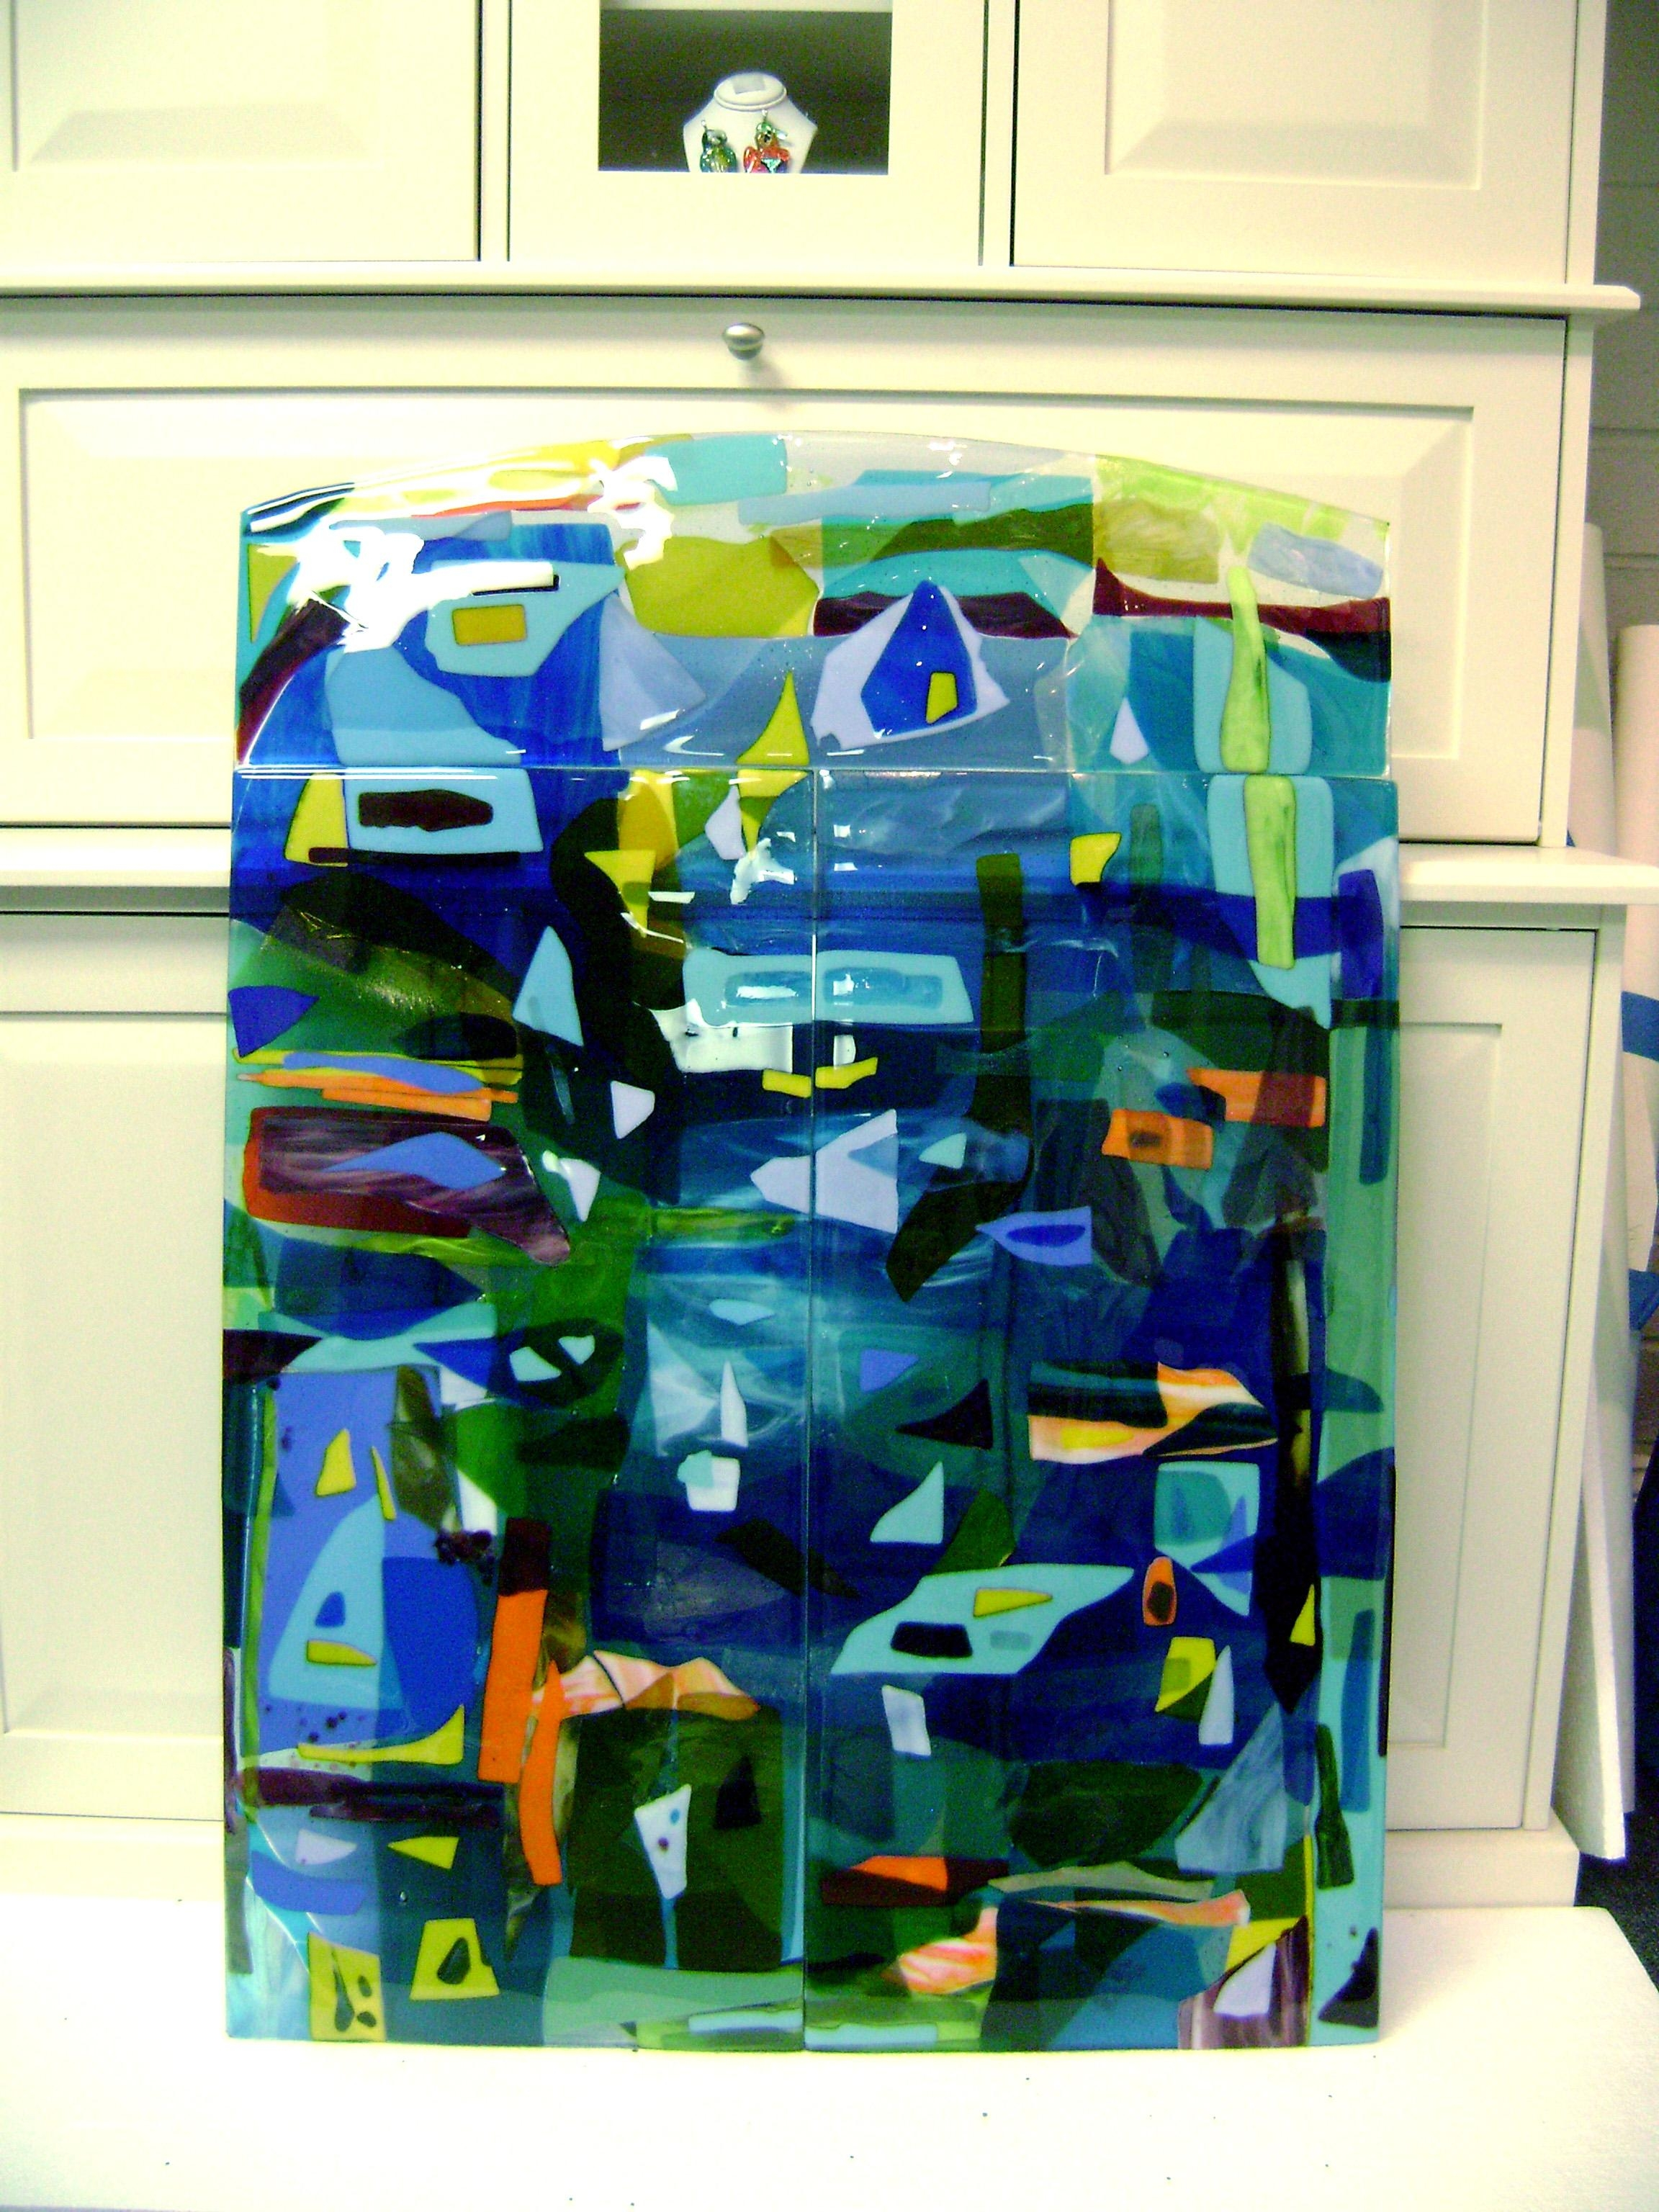 Colorful Fused Glass Wall Art Panel | Designer Glass Mosaics Regarding Cheap Fused Glass Wall Art (View 16 of 20)